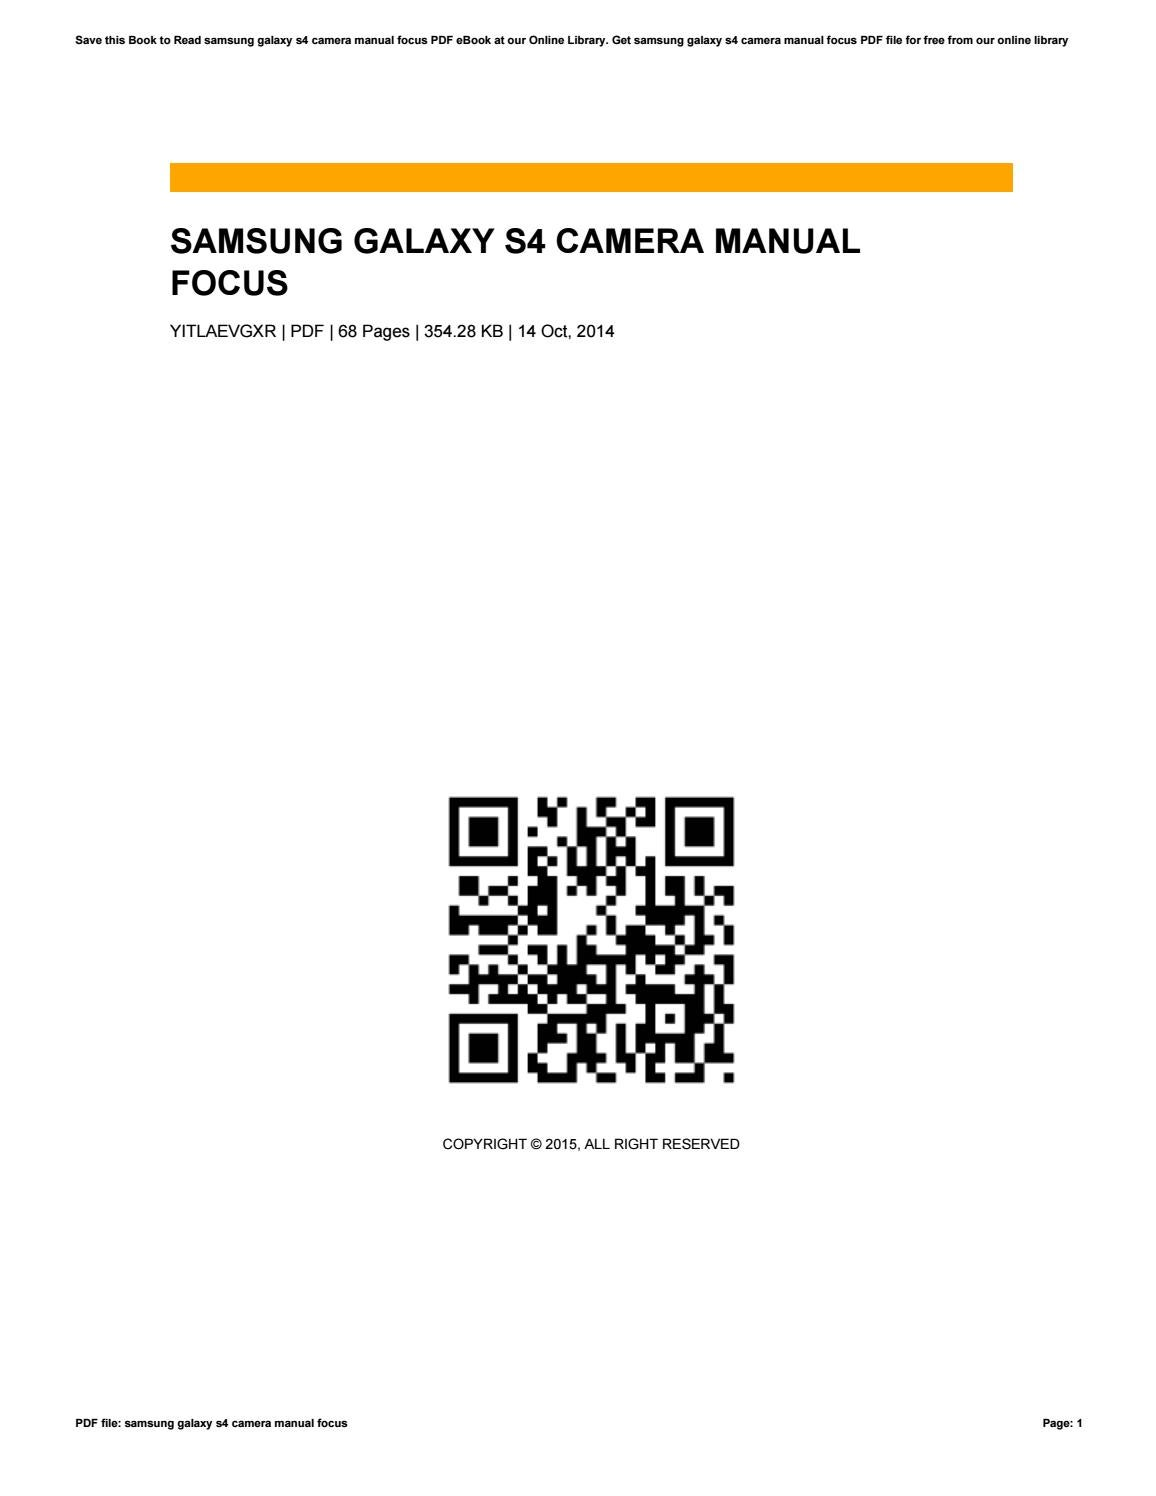 Samsung galaxy s4 camera manual focus by JimmieJohnson4753